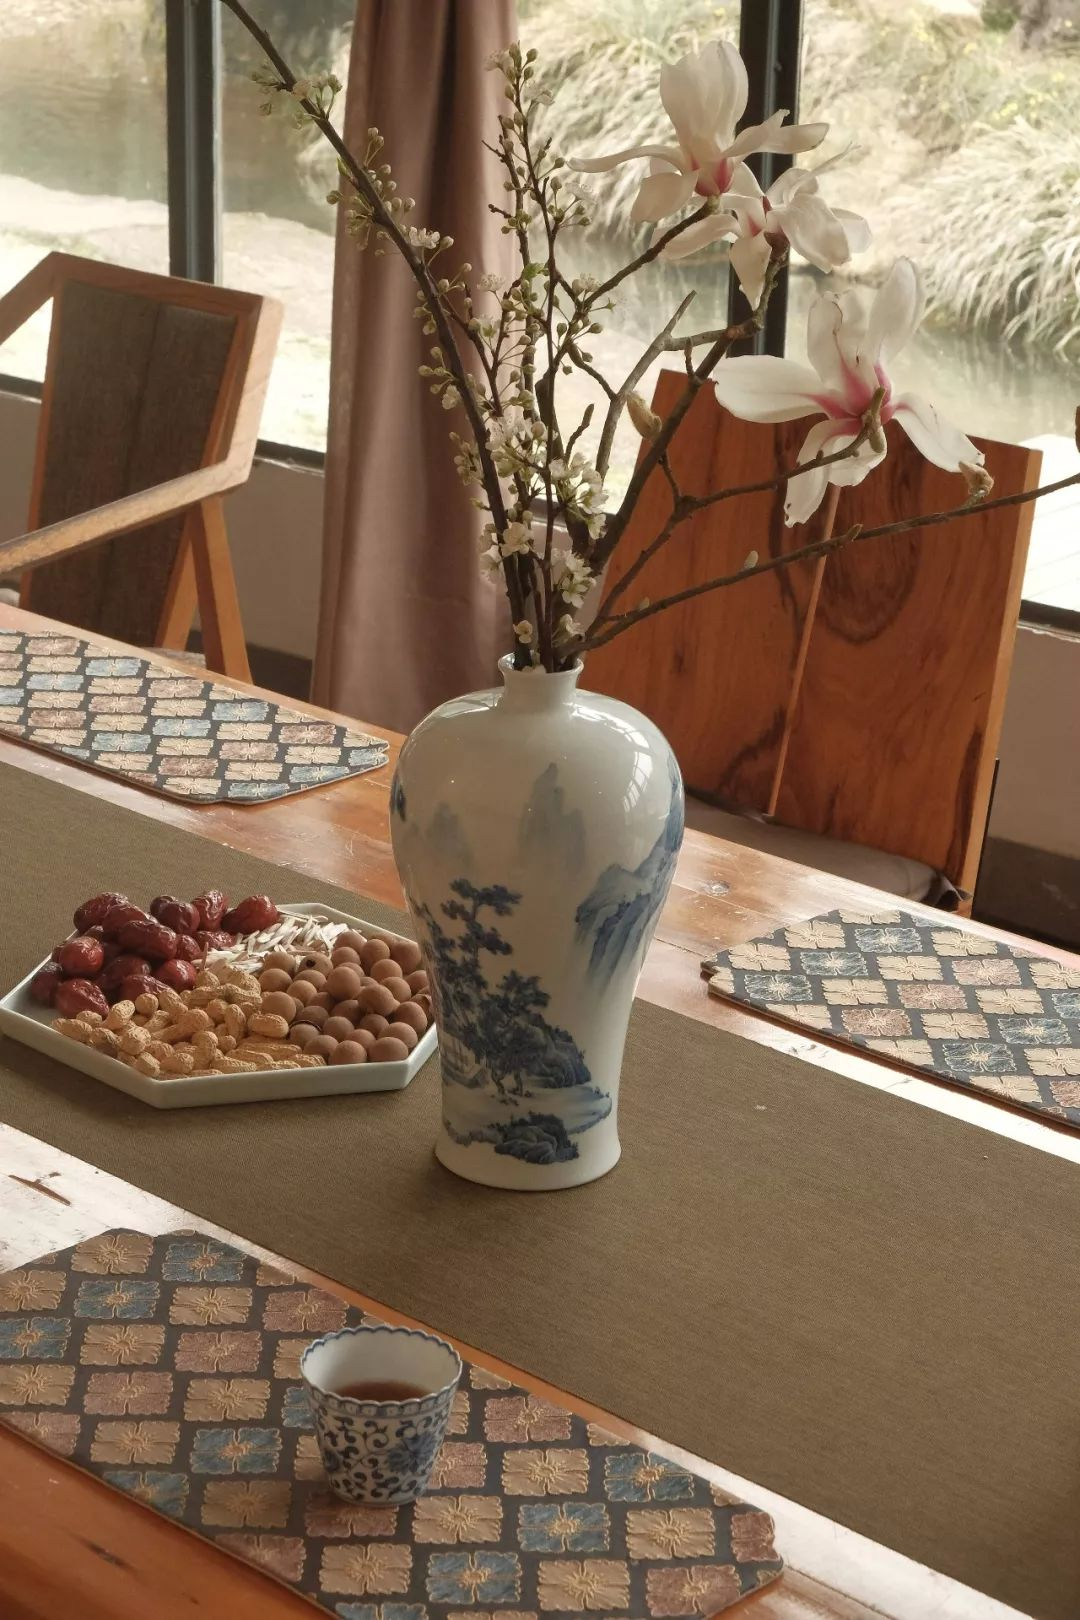 In addition to antique, ceramics should have another way